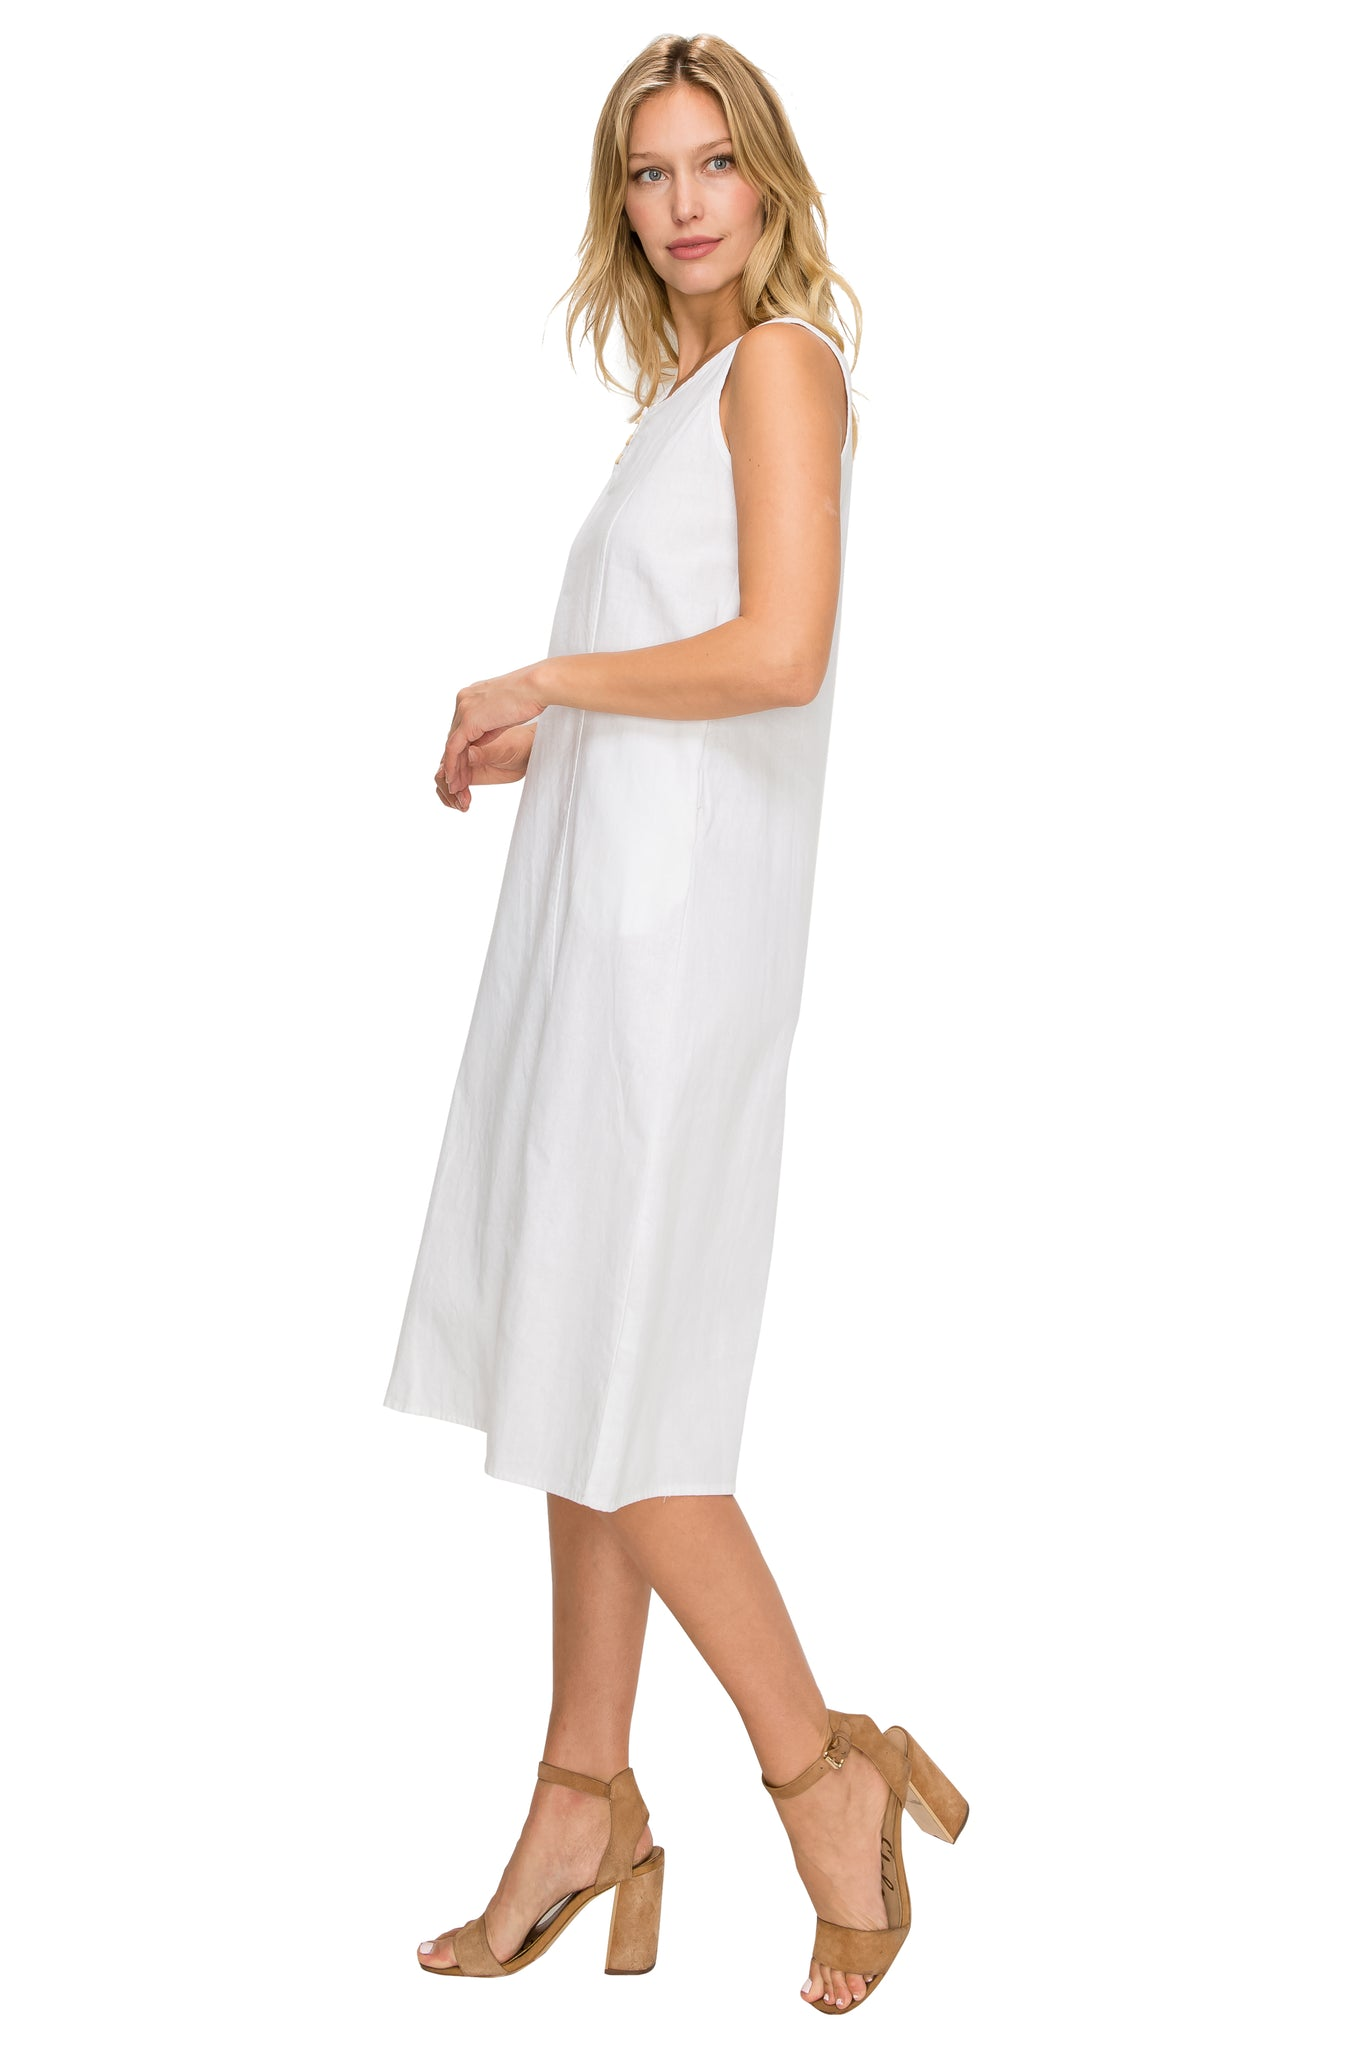 White Linen Midi-Dress - Poplooks